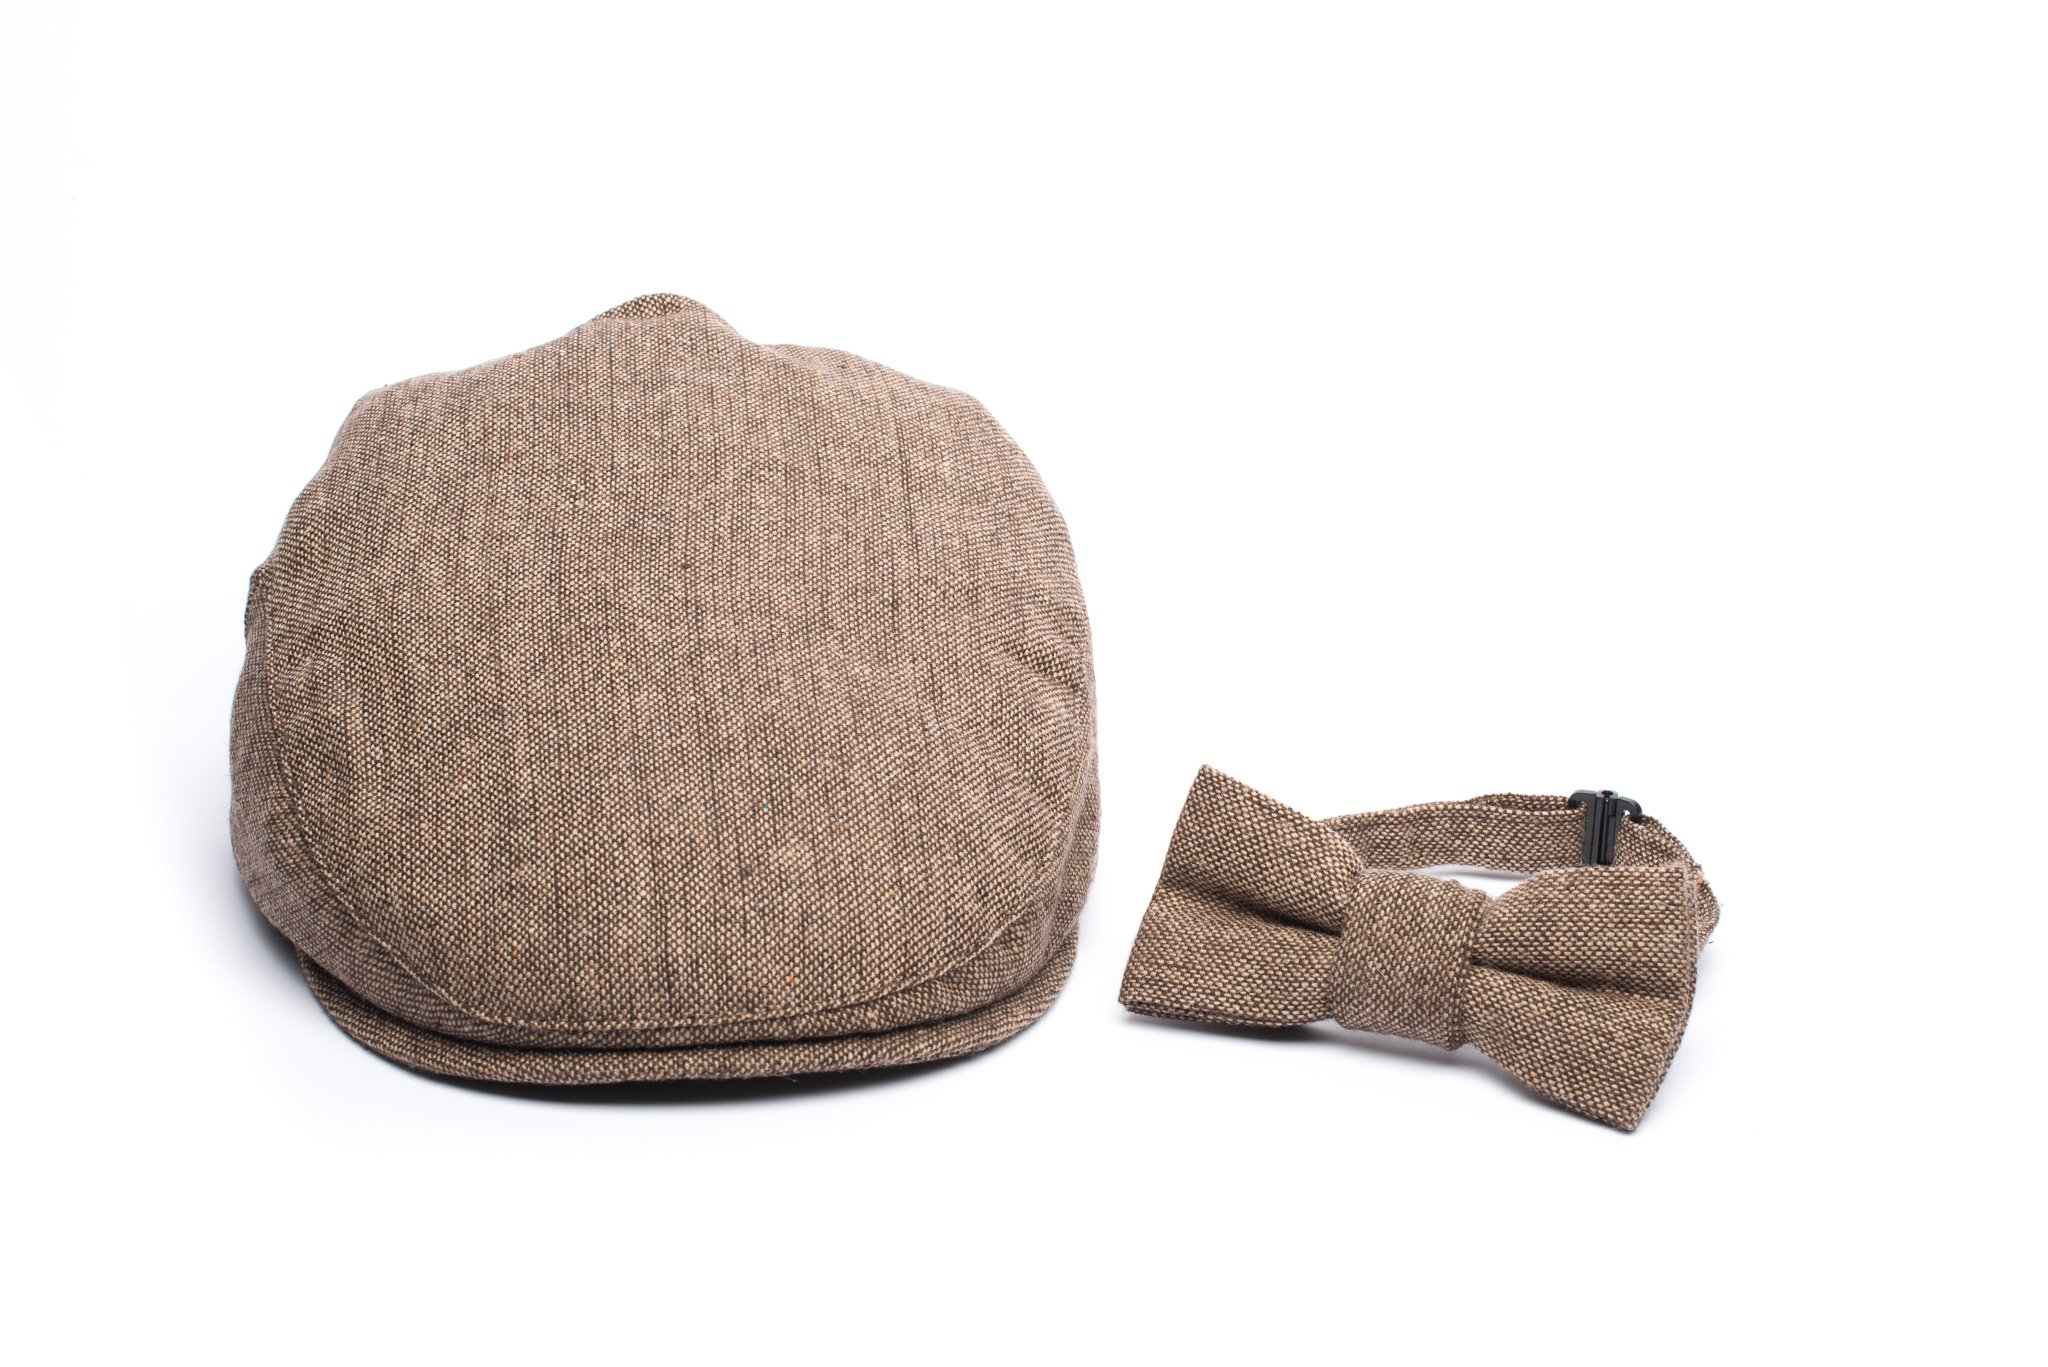 Born to Love - Baby Boy's Hat Vintage Driver Caps (XL 56cm (6-8 yrs), tan with Bow) by Born to Love (Image #2)